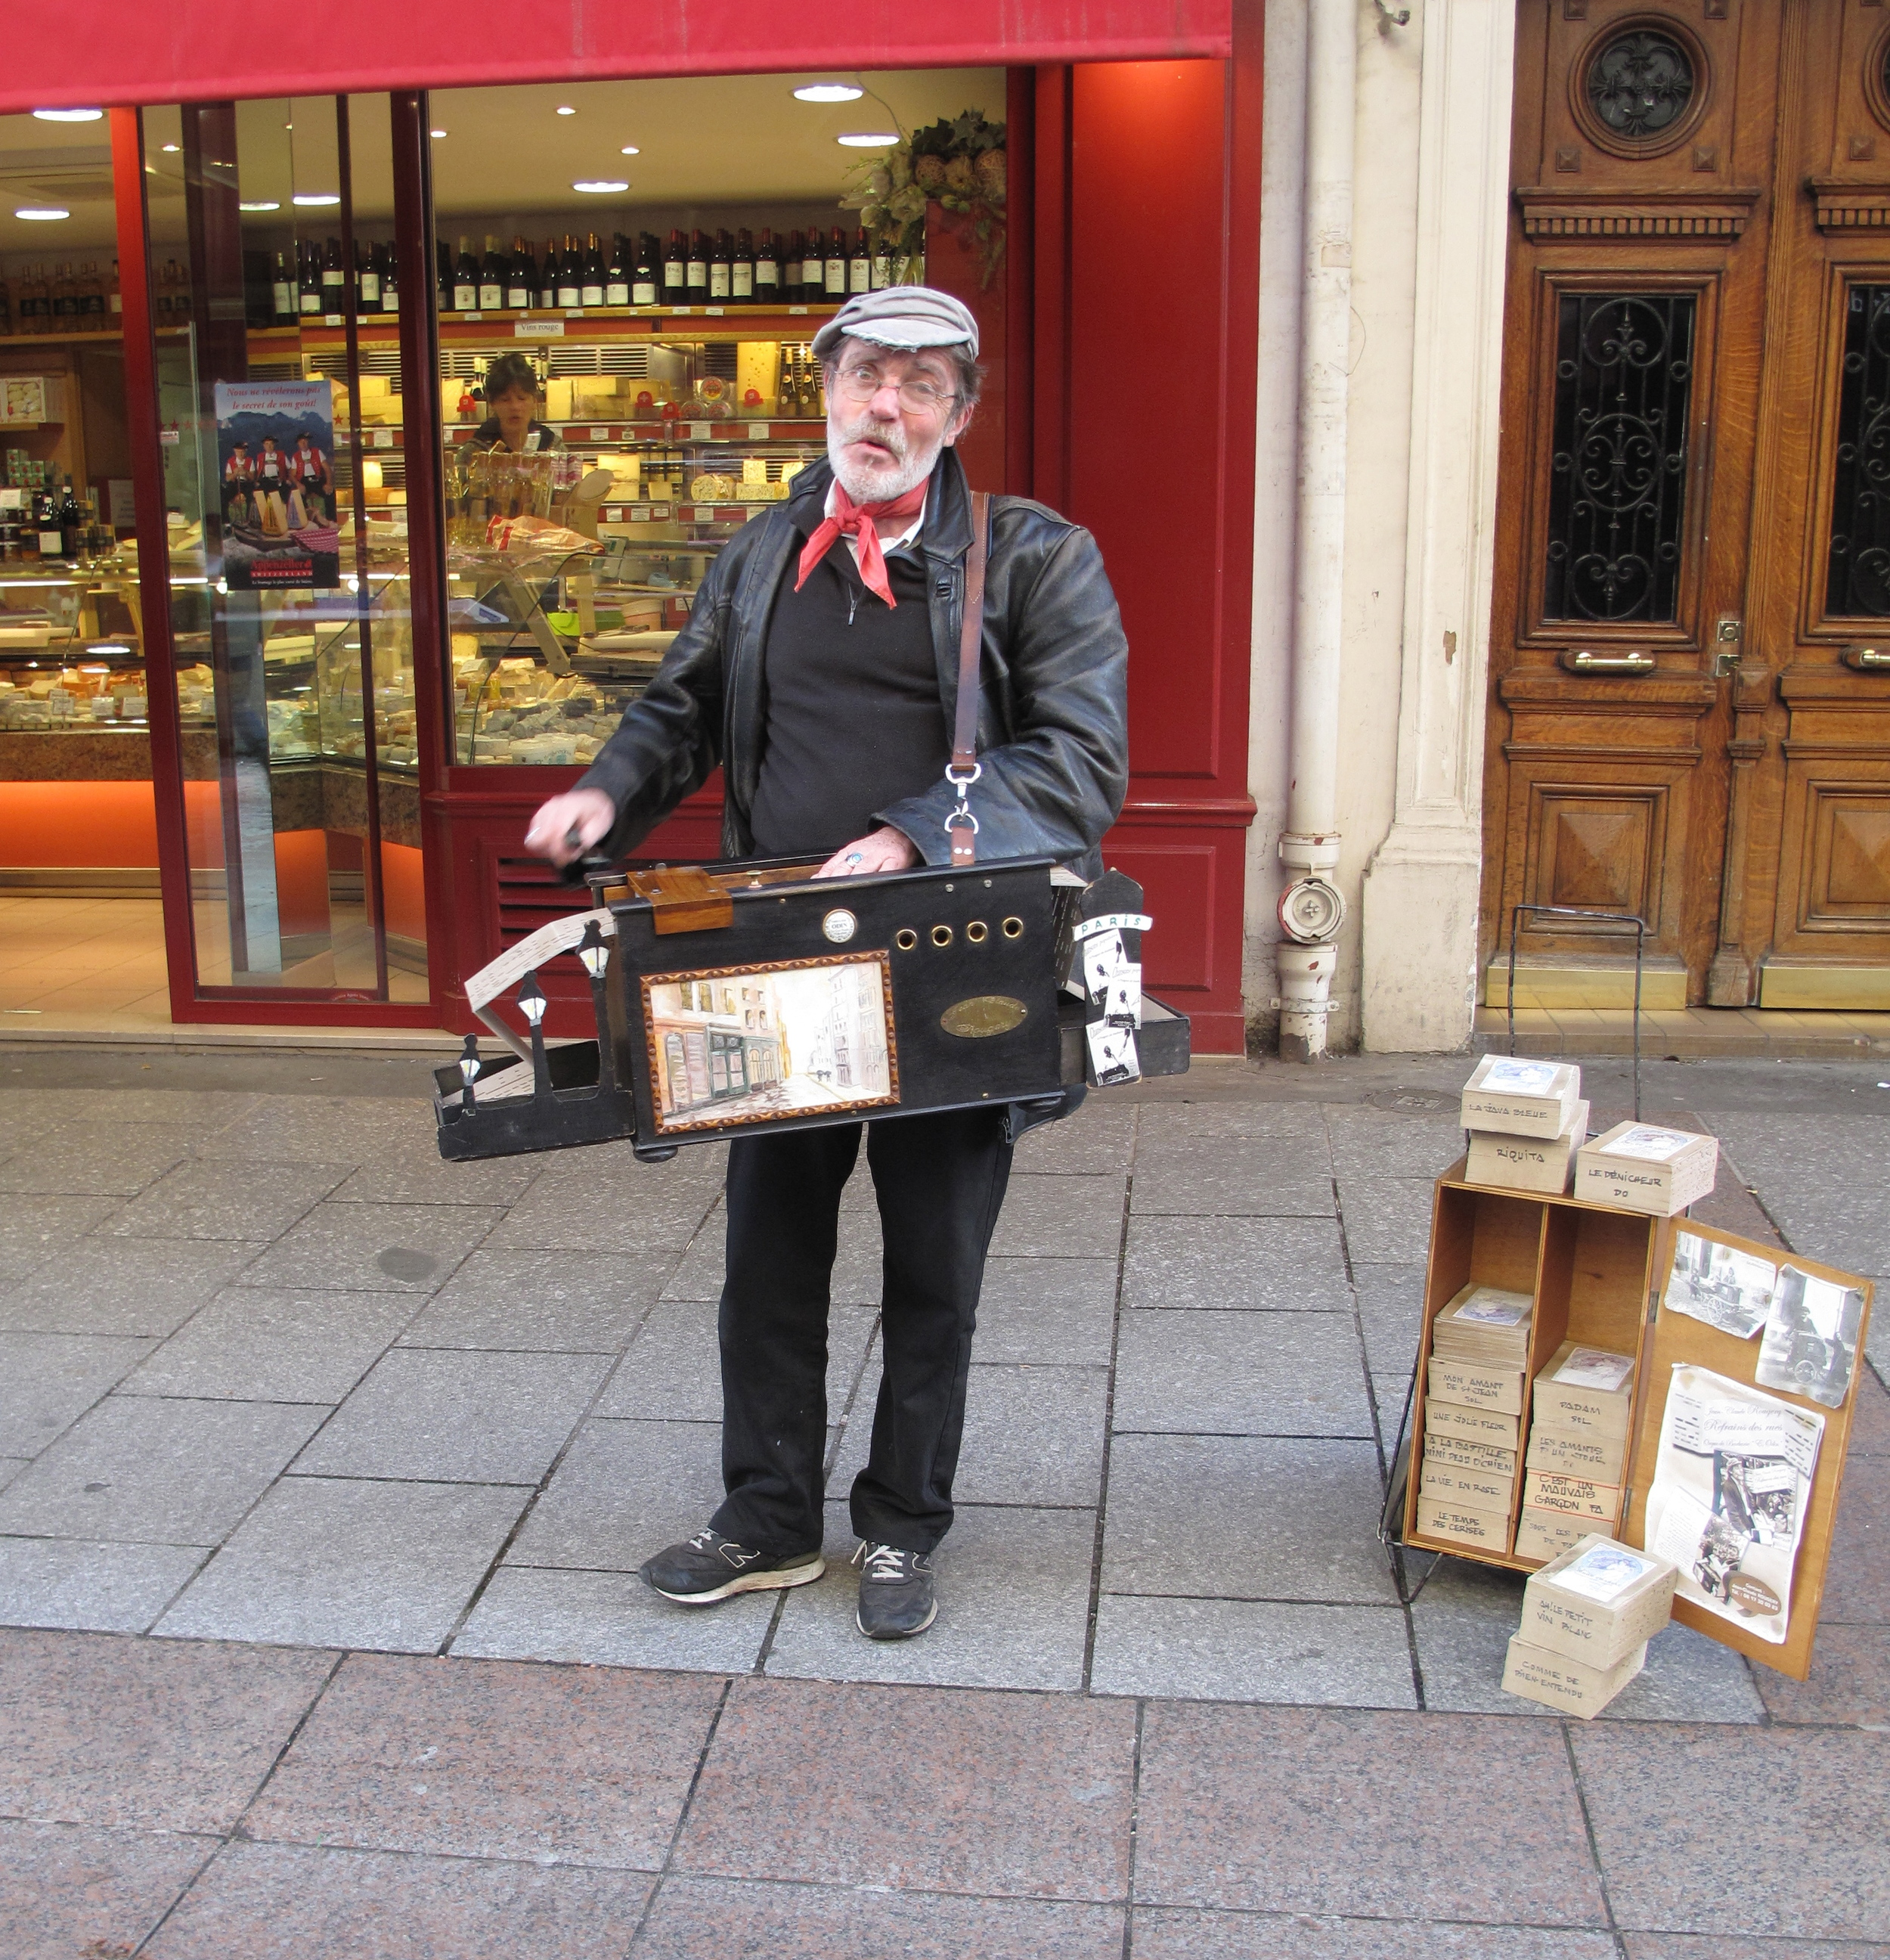 Busker playing a piano accordion in Paris